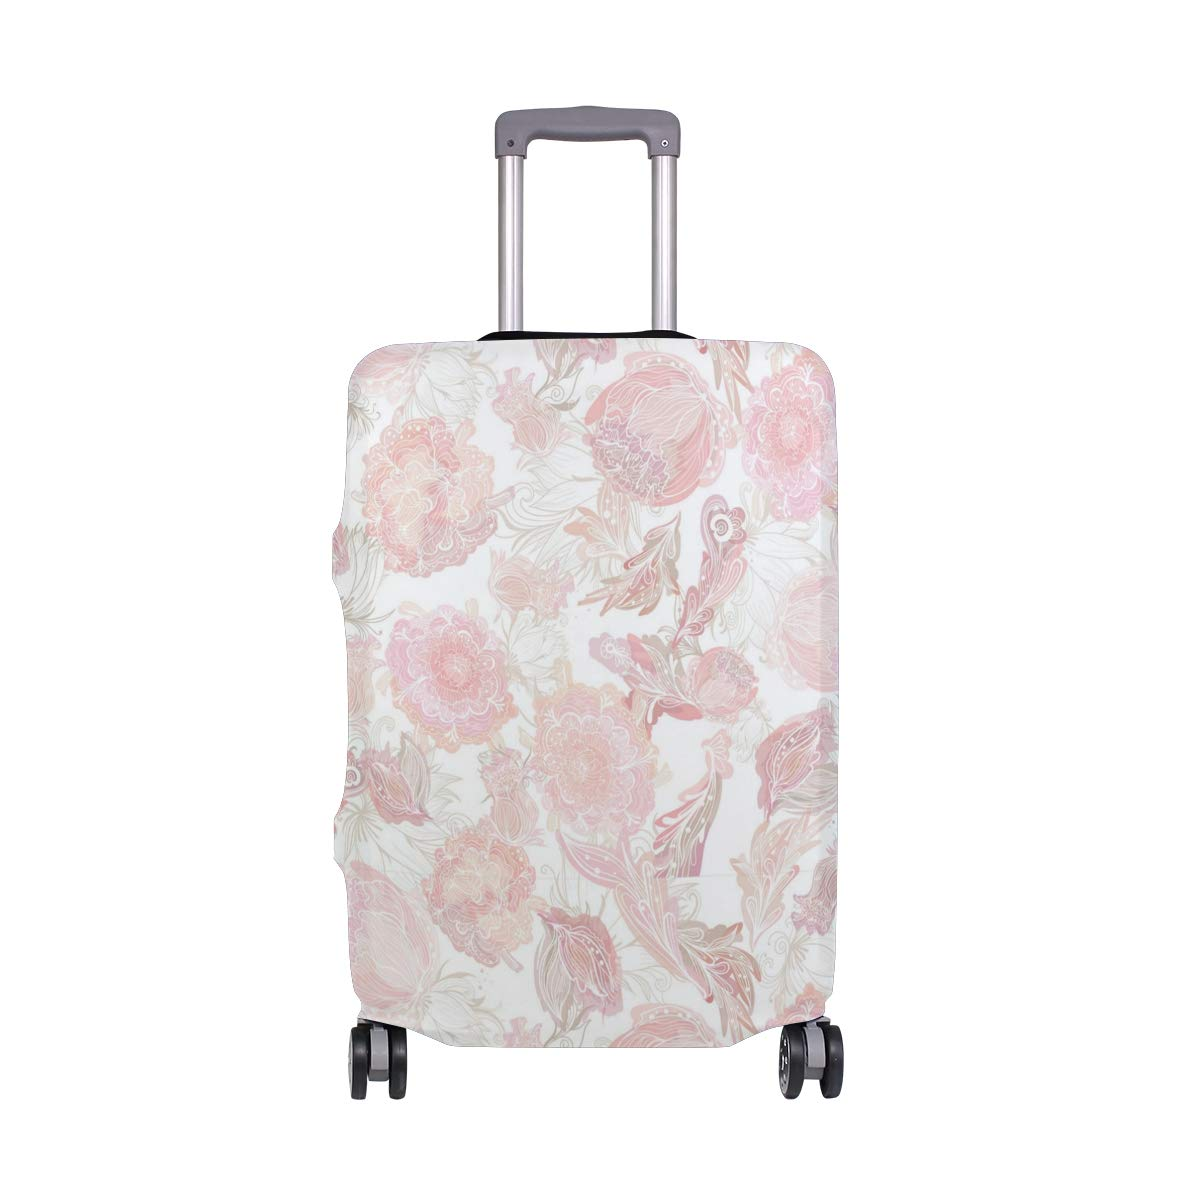 Pink Metal Attribute Rose Traveler Lightweight Rotating Luggage Protector Case Can Carry With You Can Expand Travel Bag Trolley Rolling Luggage Protector Case